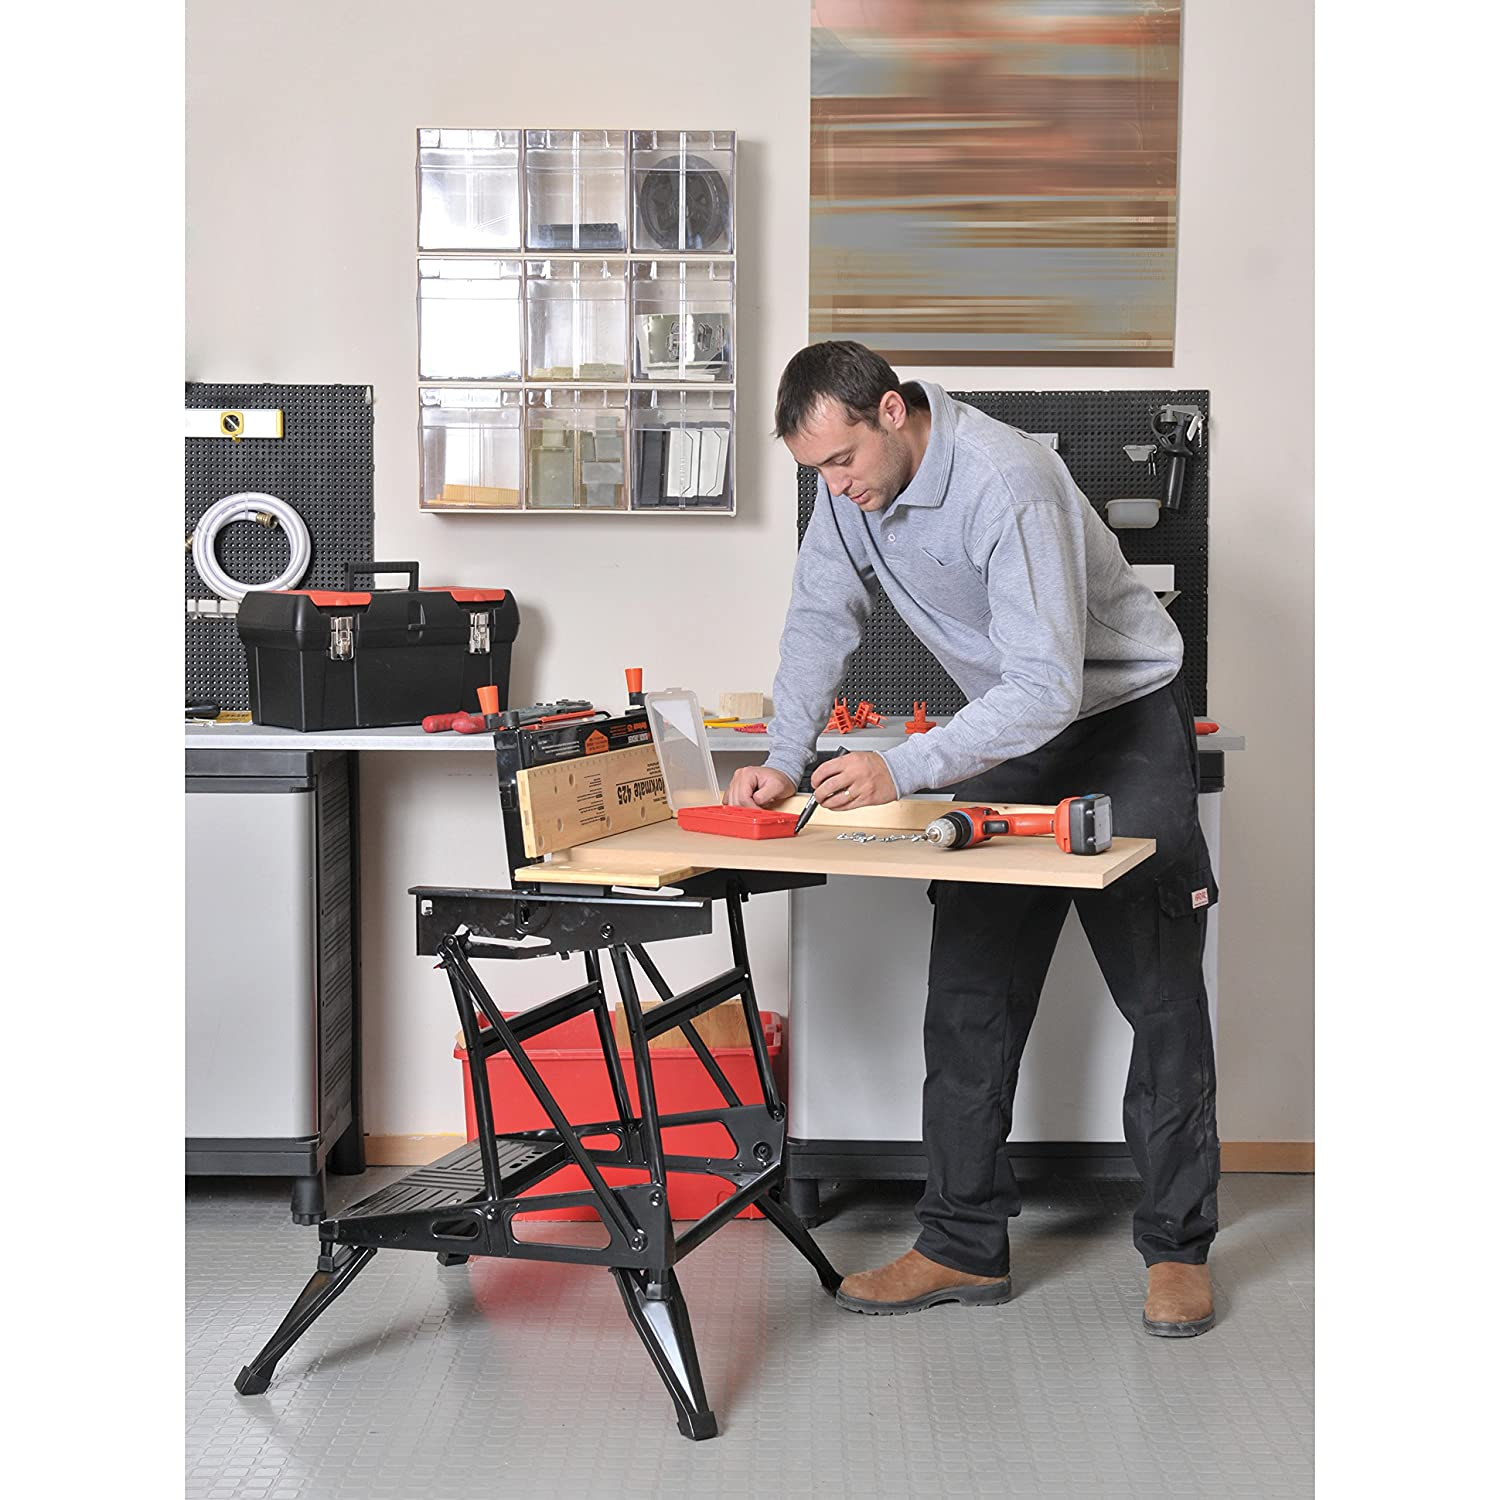 Black and decker workmate 1000 review - Black Decker Wm425 Workmate 425 550 Pound Capacity Portable Work Bench Amazon Ca Tools Home Improvement